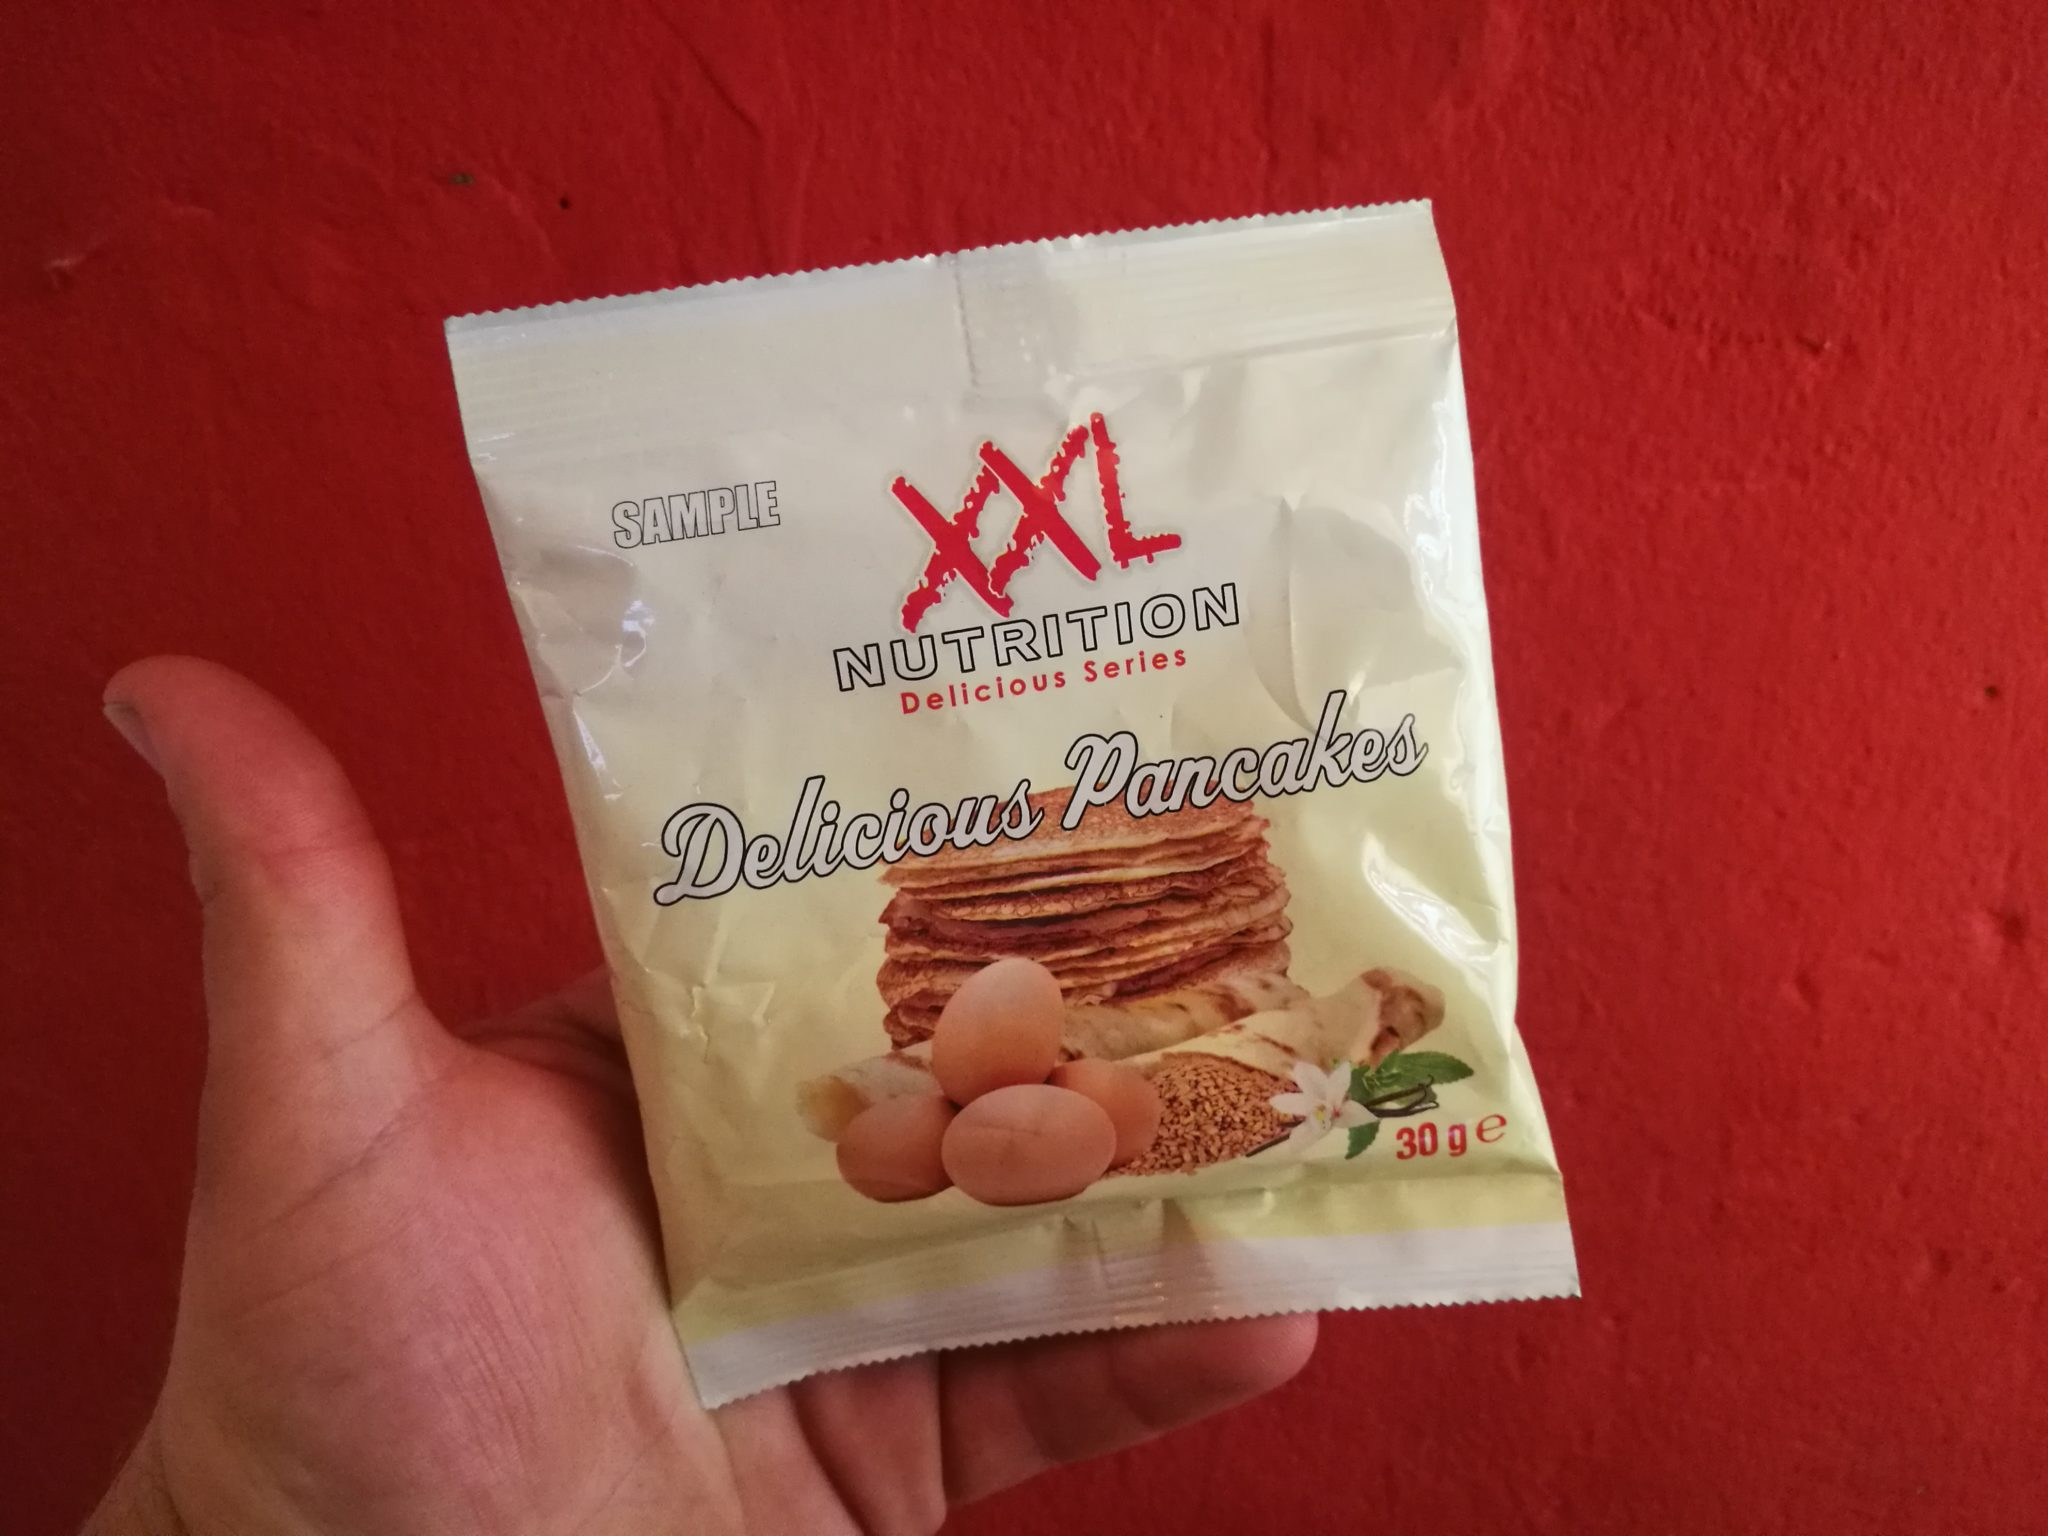 XXL Nutrition Delicious Pancakes